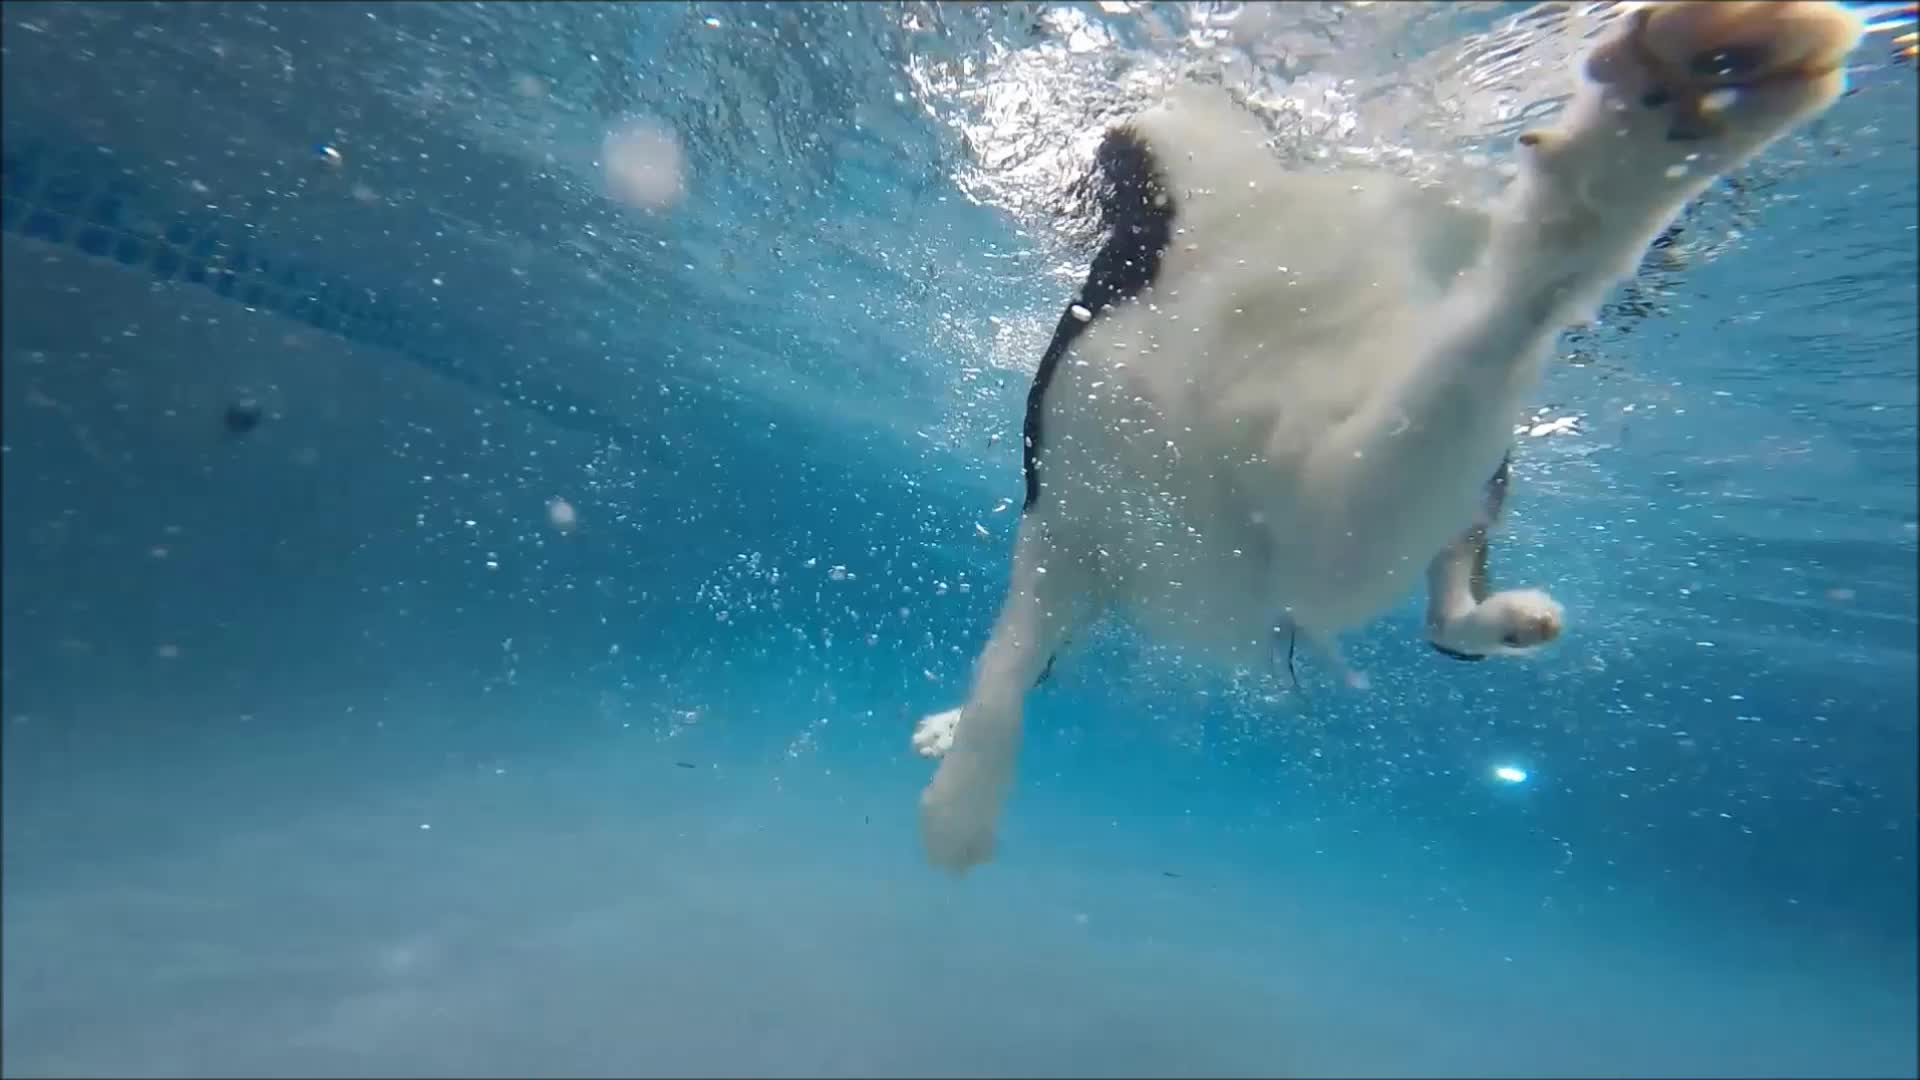 Border Collie Feature Swims Underwater In Swimming Pool To Get Kong Wubba Dog Toy